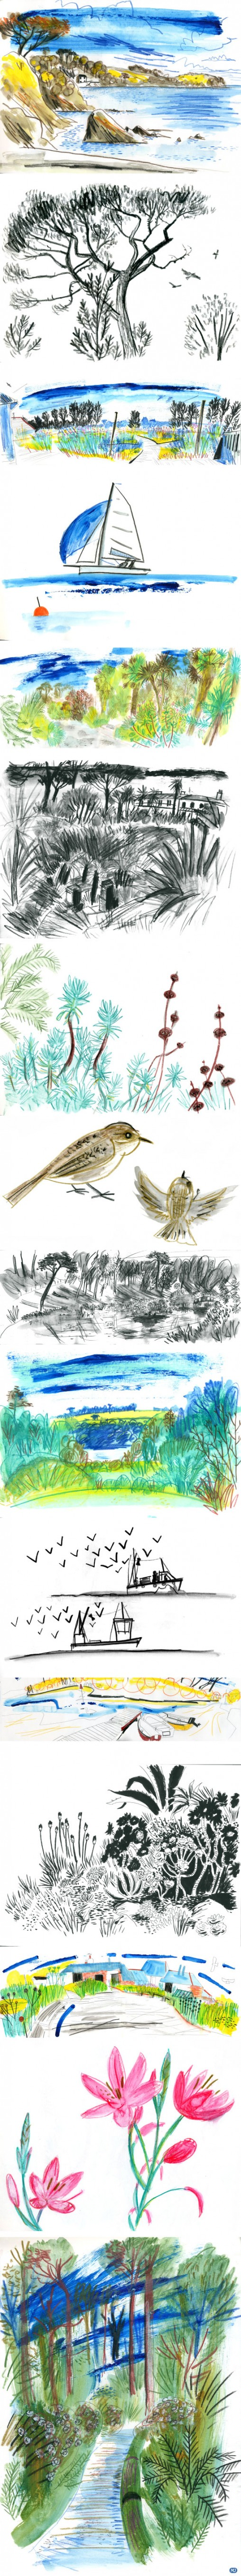 Sketchbook of Trebah Gardens, Helford River, Kestle Barton and Gyllyngdune Gardens in Falmouth